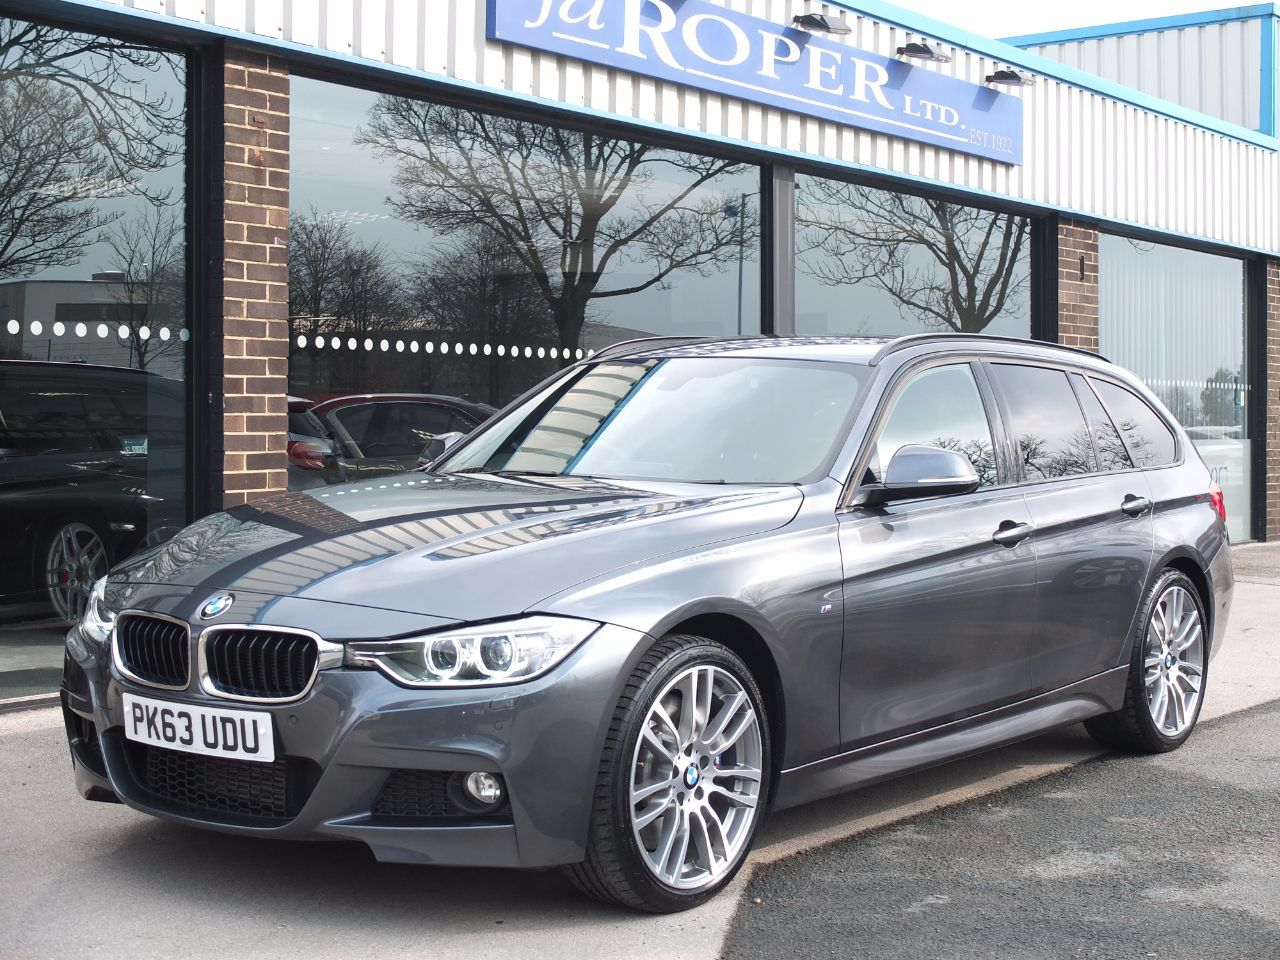 BMW 3 Series 3.0 330d xDrive M Sport Touring Auto +++Spec Estate Diesel Mineral Grey MetallicBMW 3 Series 3.0 330d xDrive M Sport Touring Auto +++Spec Estate Diesel Mineral Grey Metallic at fa Roper Ltd Bradford